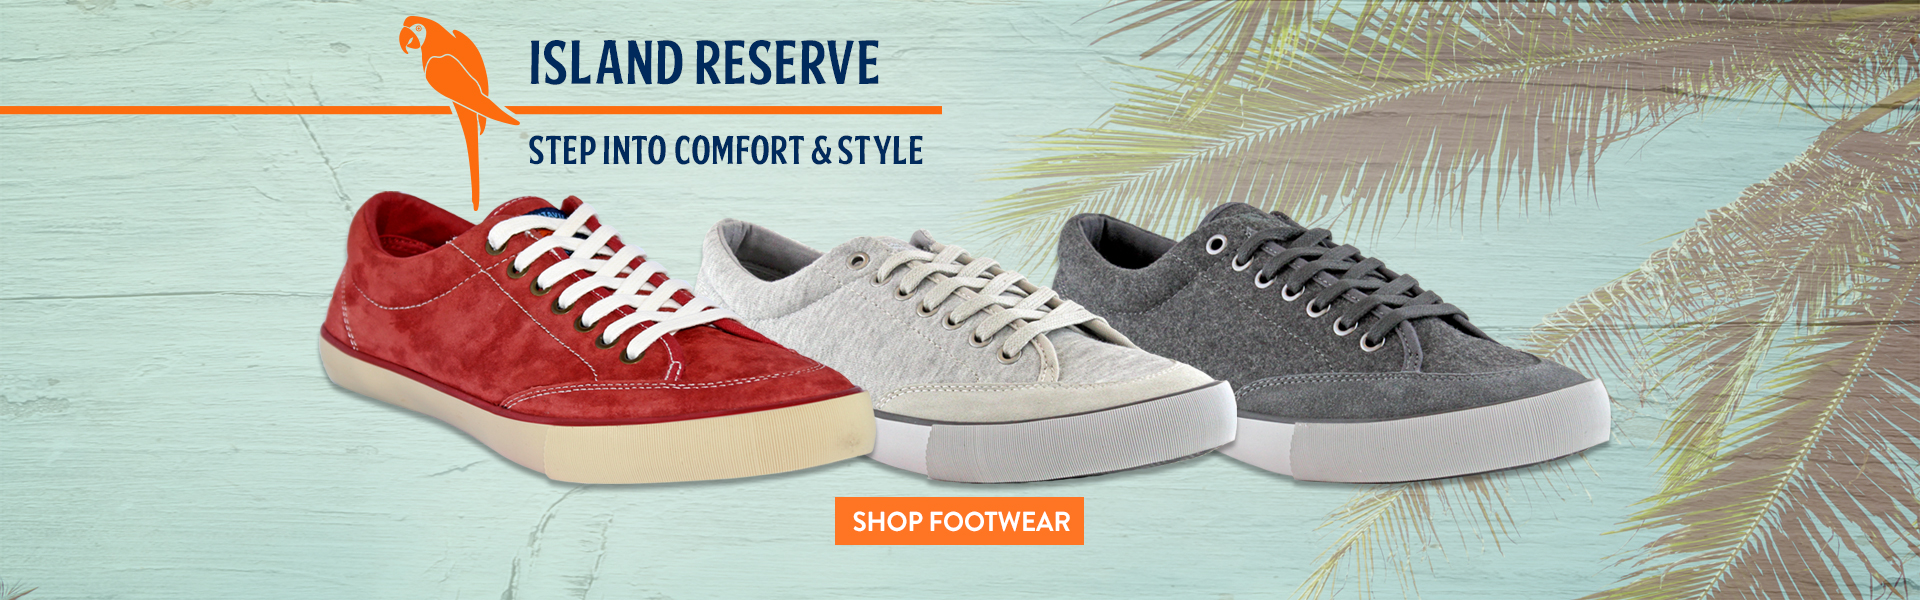 Island Reserve Shoes